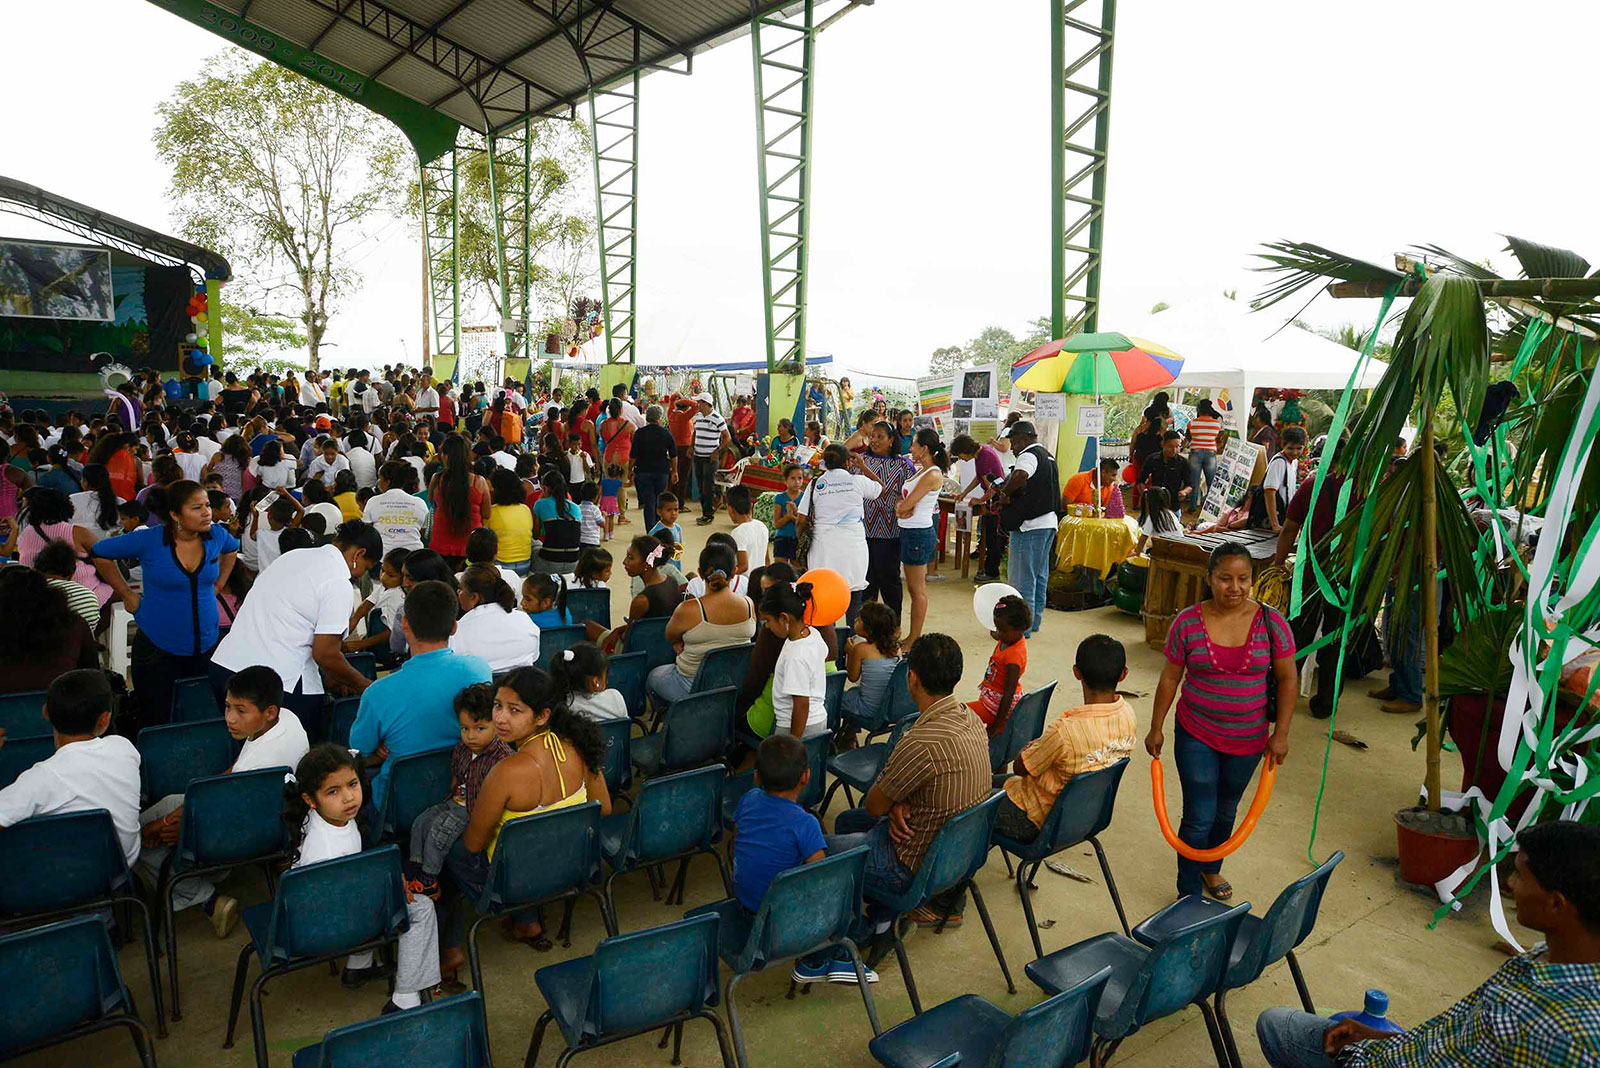 People gather for a seated event under a large pavillion